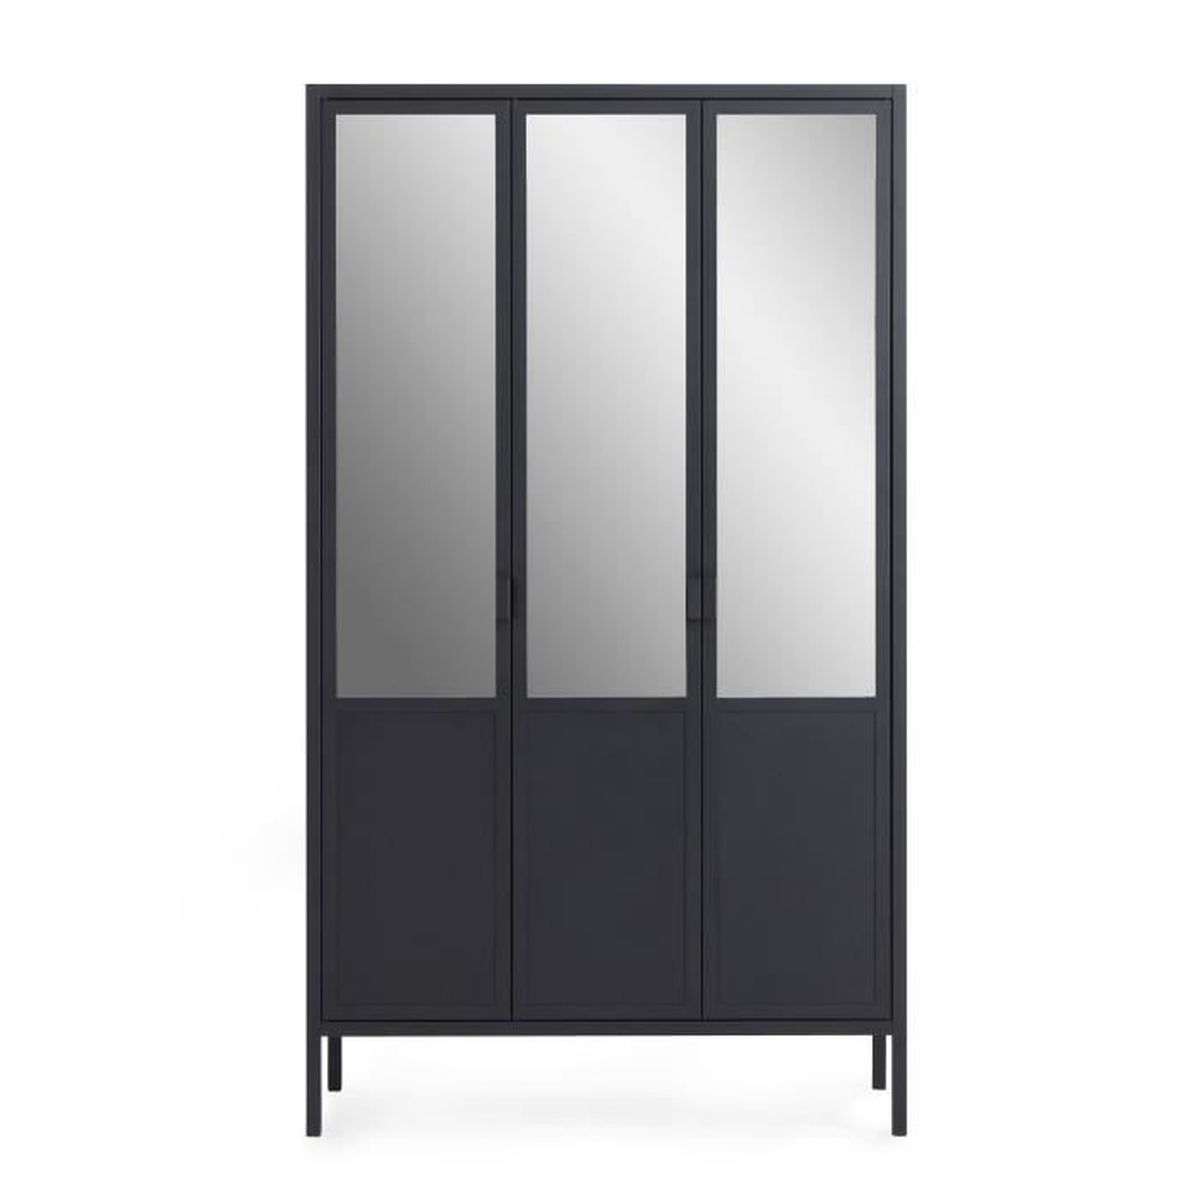 armoire porte coulissante pas cher ikea. Black Bedroom Furniture Sets. Home Design Ideas